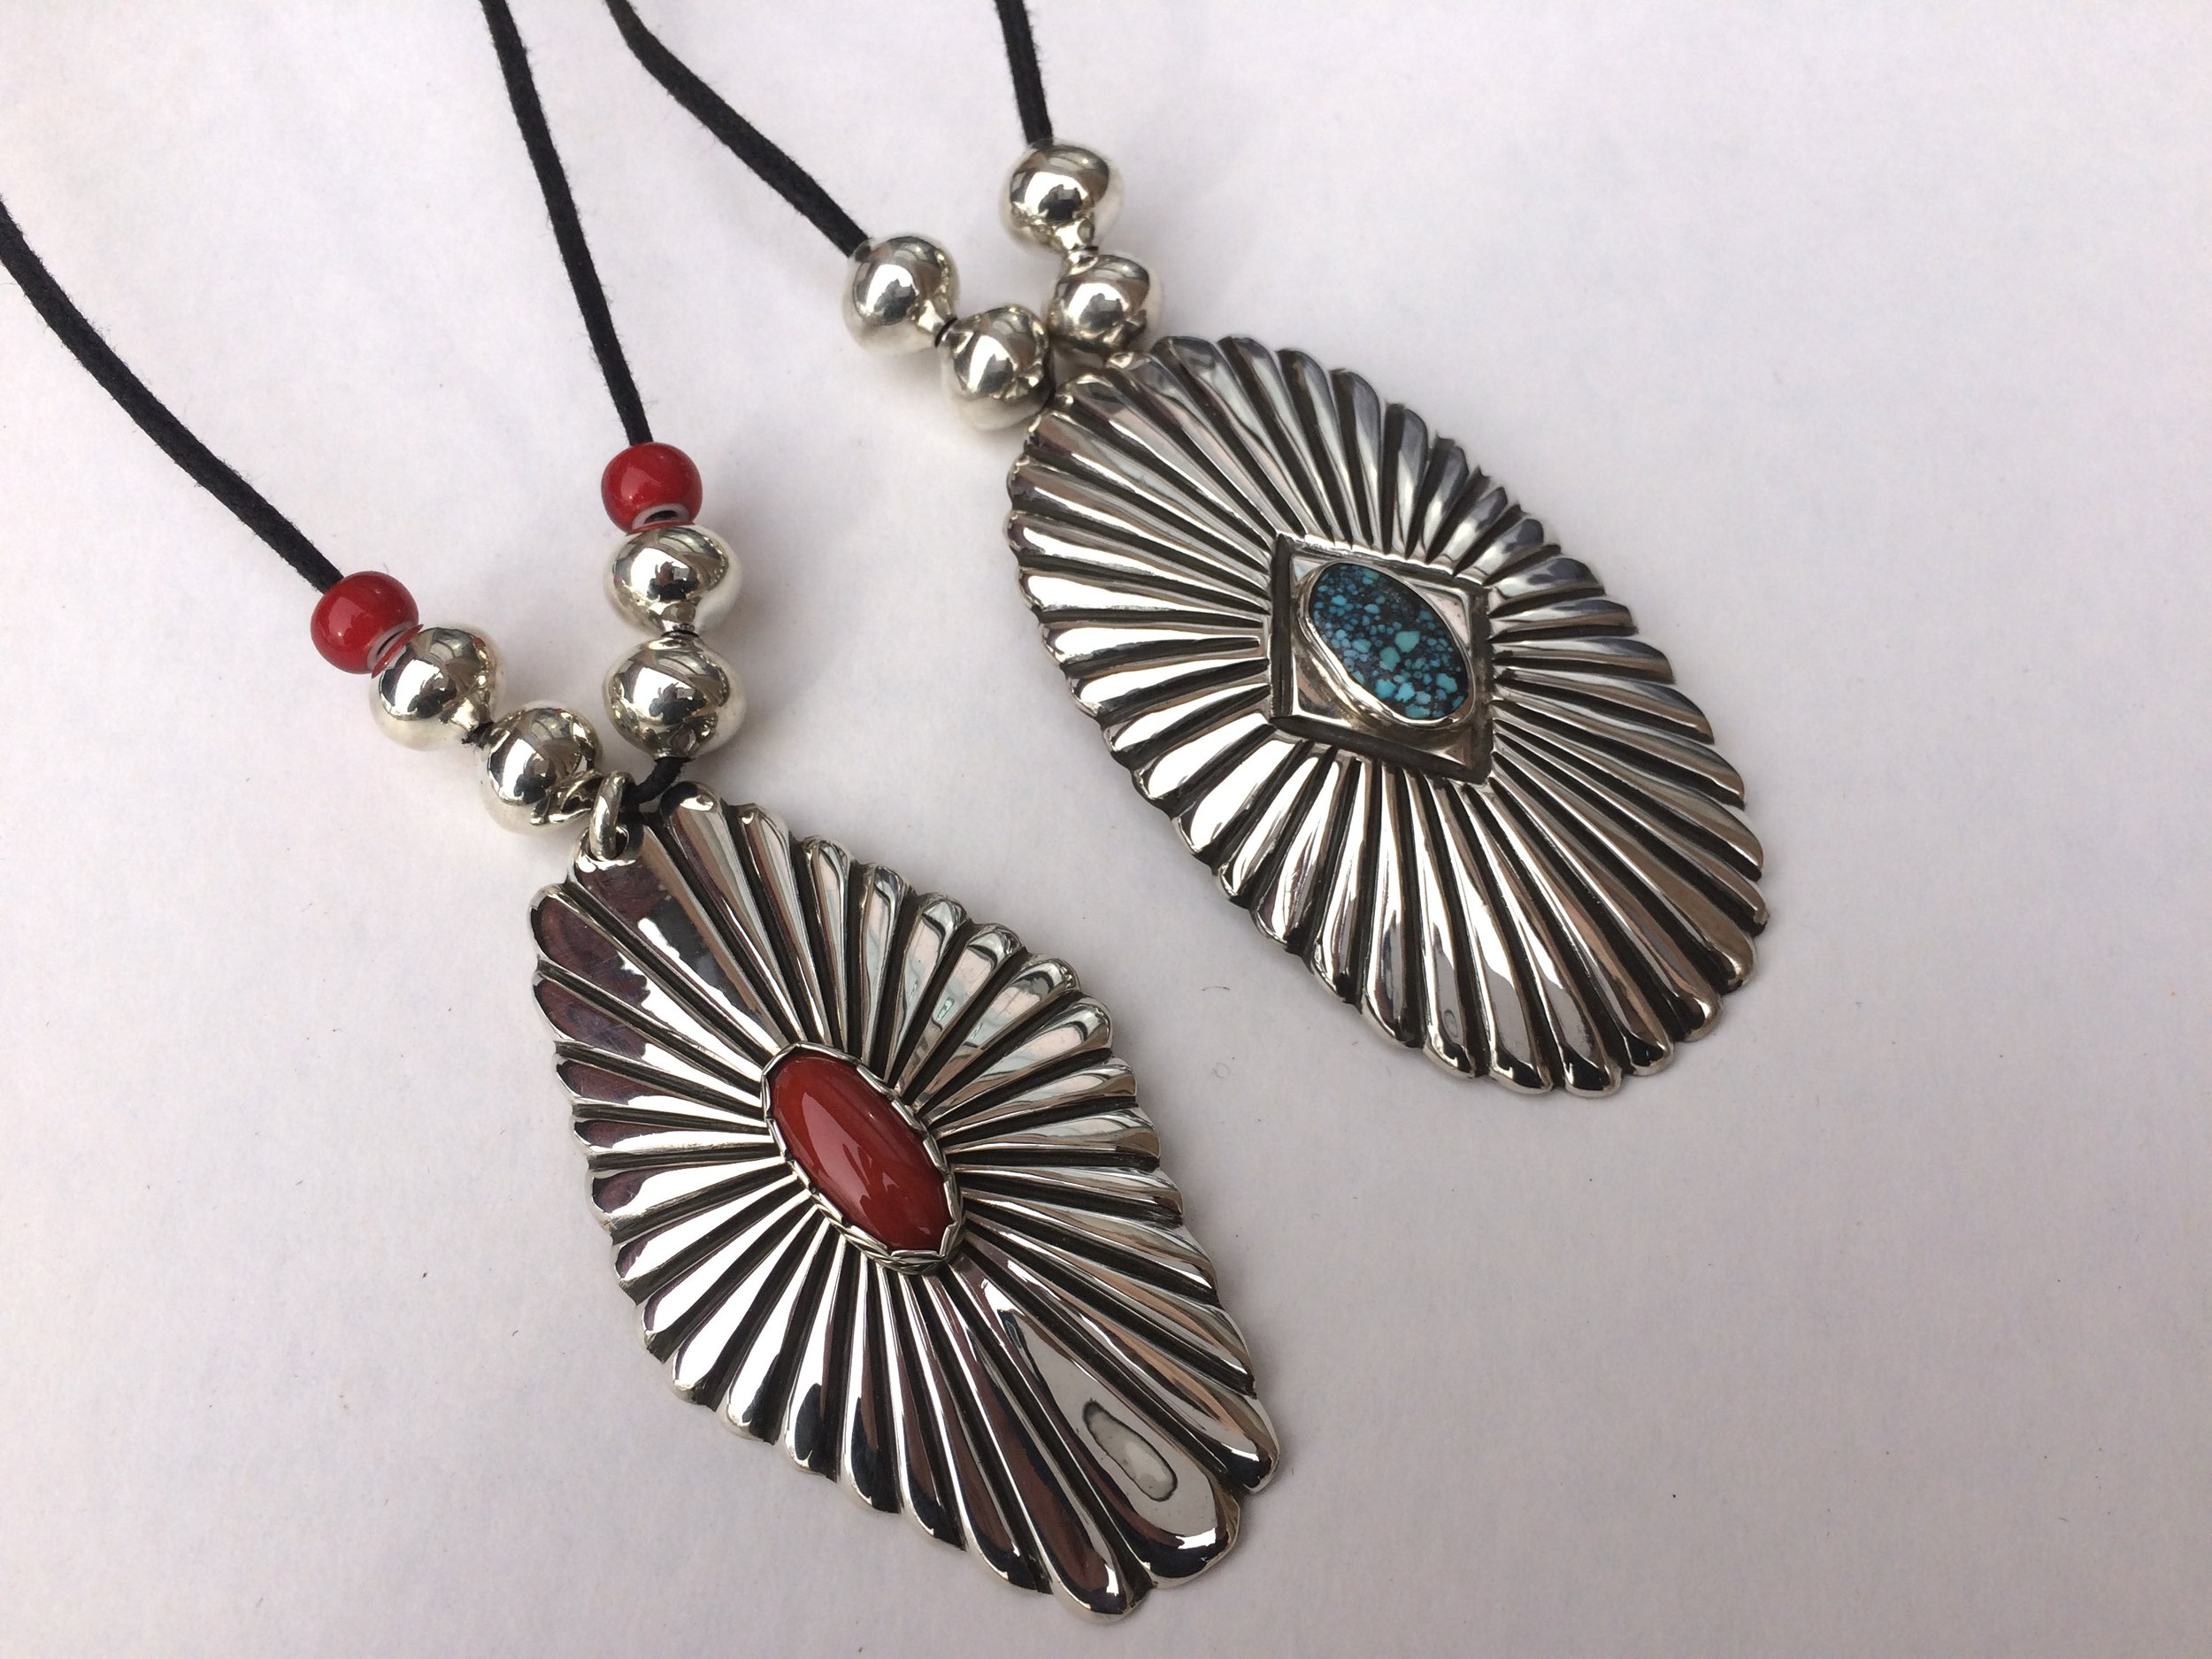 Sunburst pendants with high grade coral and turquoise